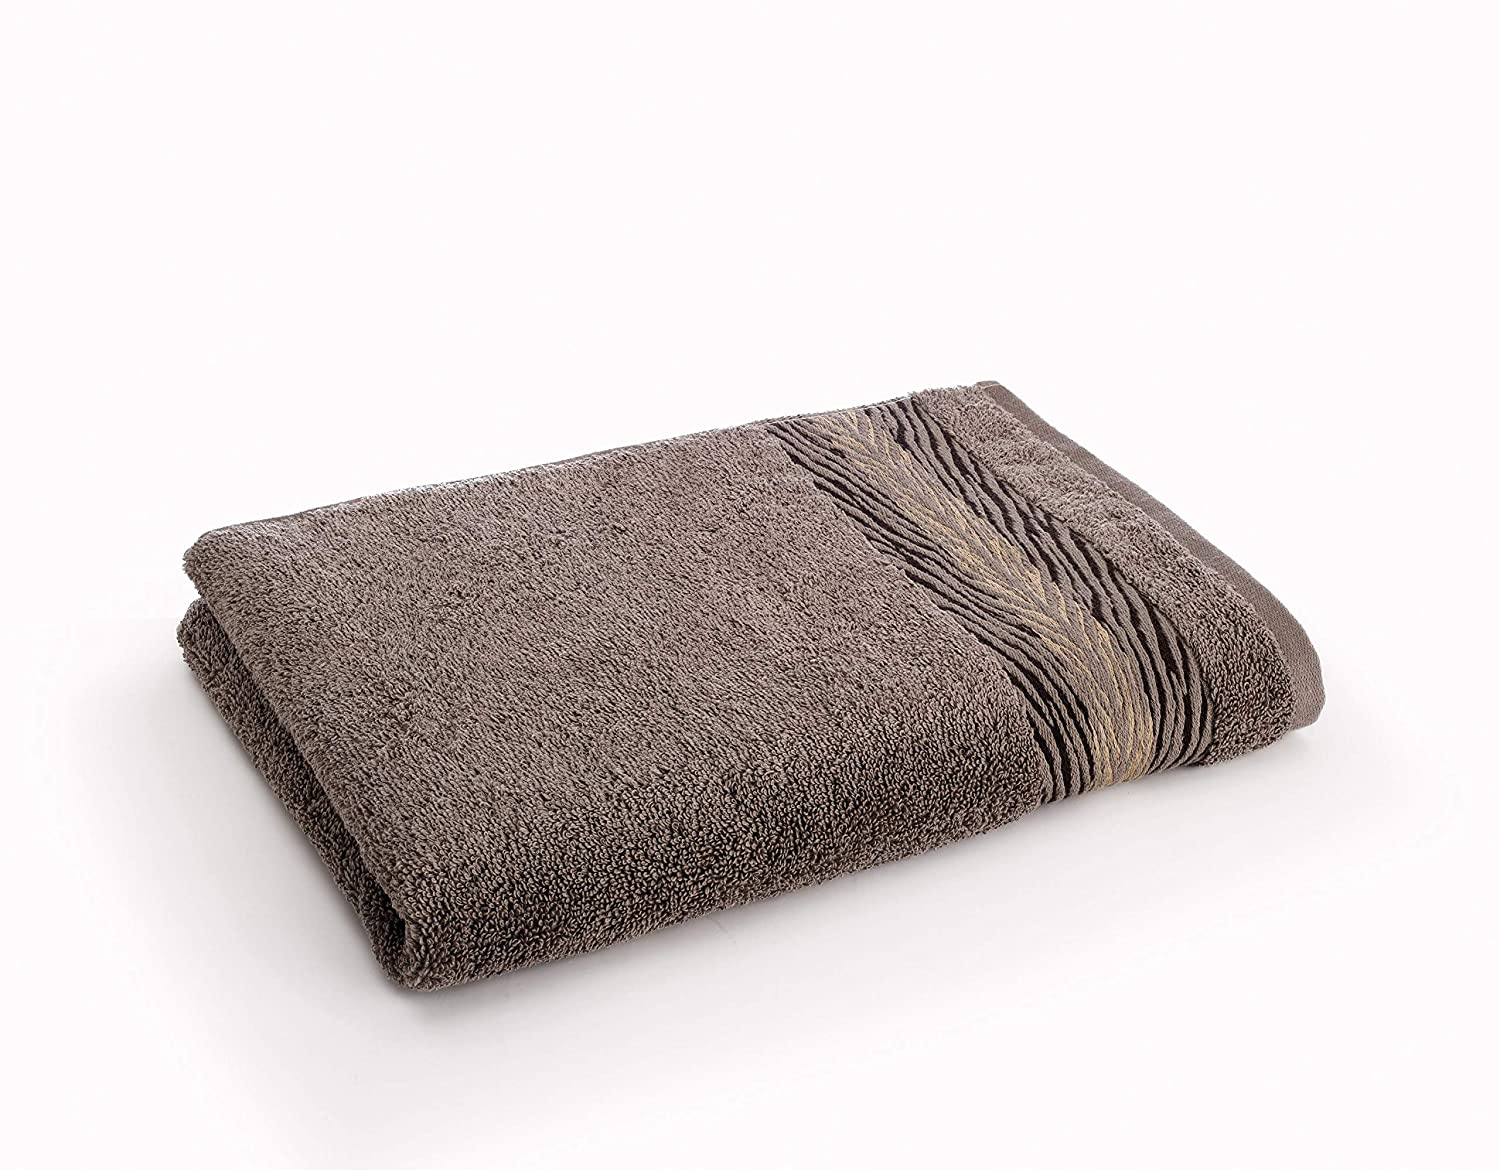 Mink 50 x 100cm 480gsm Naomi Campbell Collection Hand Towel